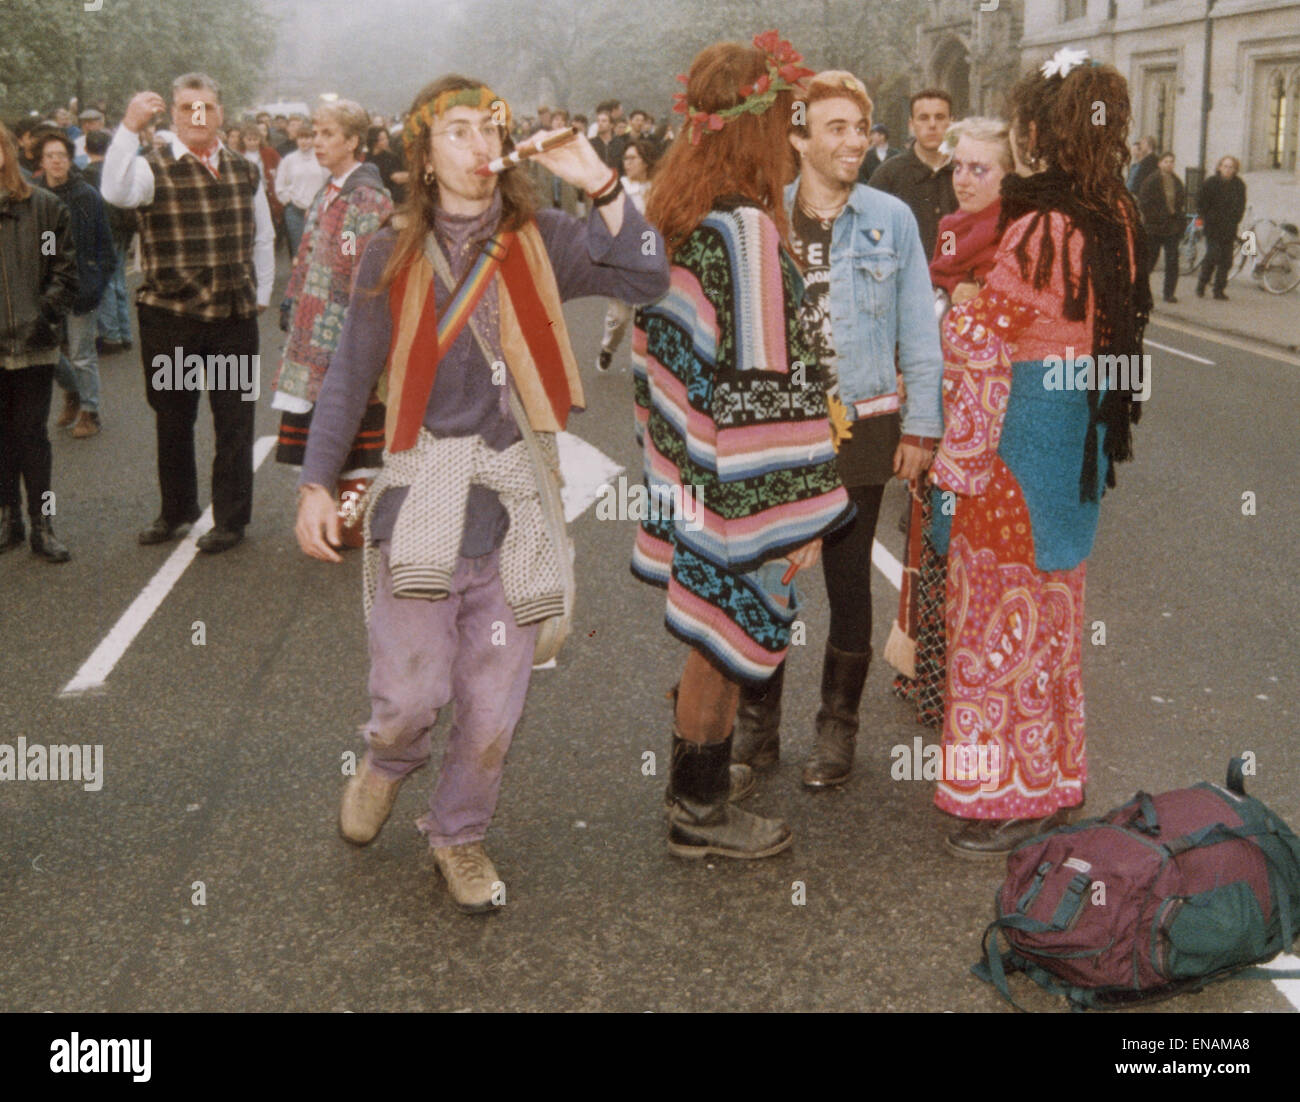 FILE PHOTOS: Oxford, Oxfordshire, UK. 1st May, 1995. Oxford May Day celebrations Magdalen Bridge. Revellers embrace Stock Photo